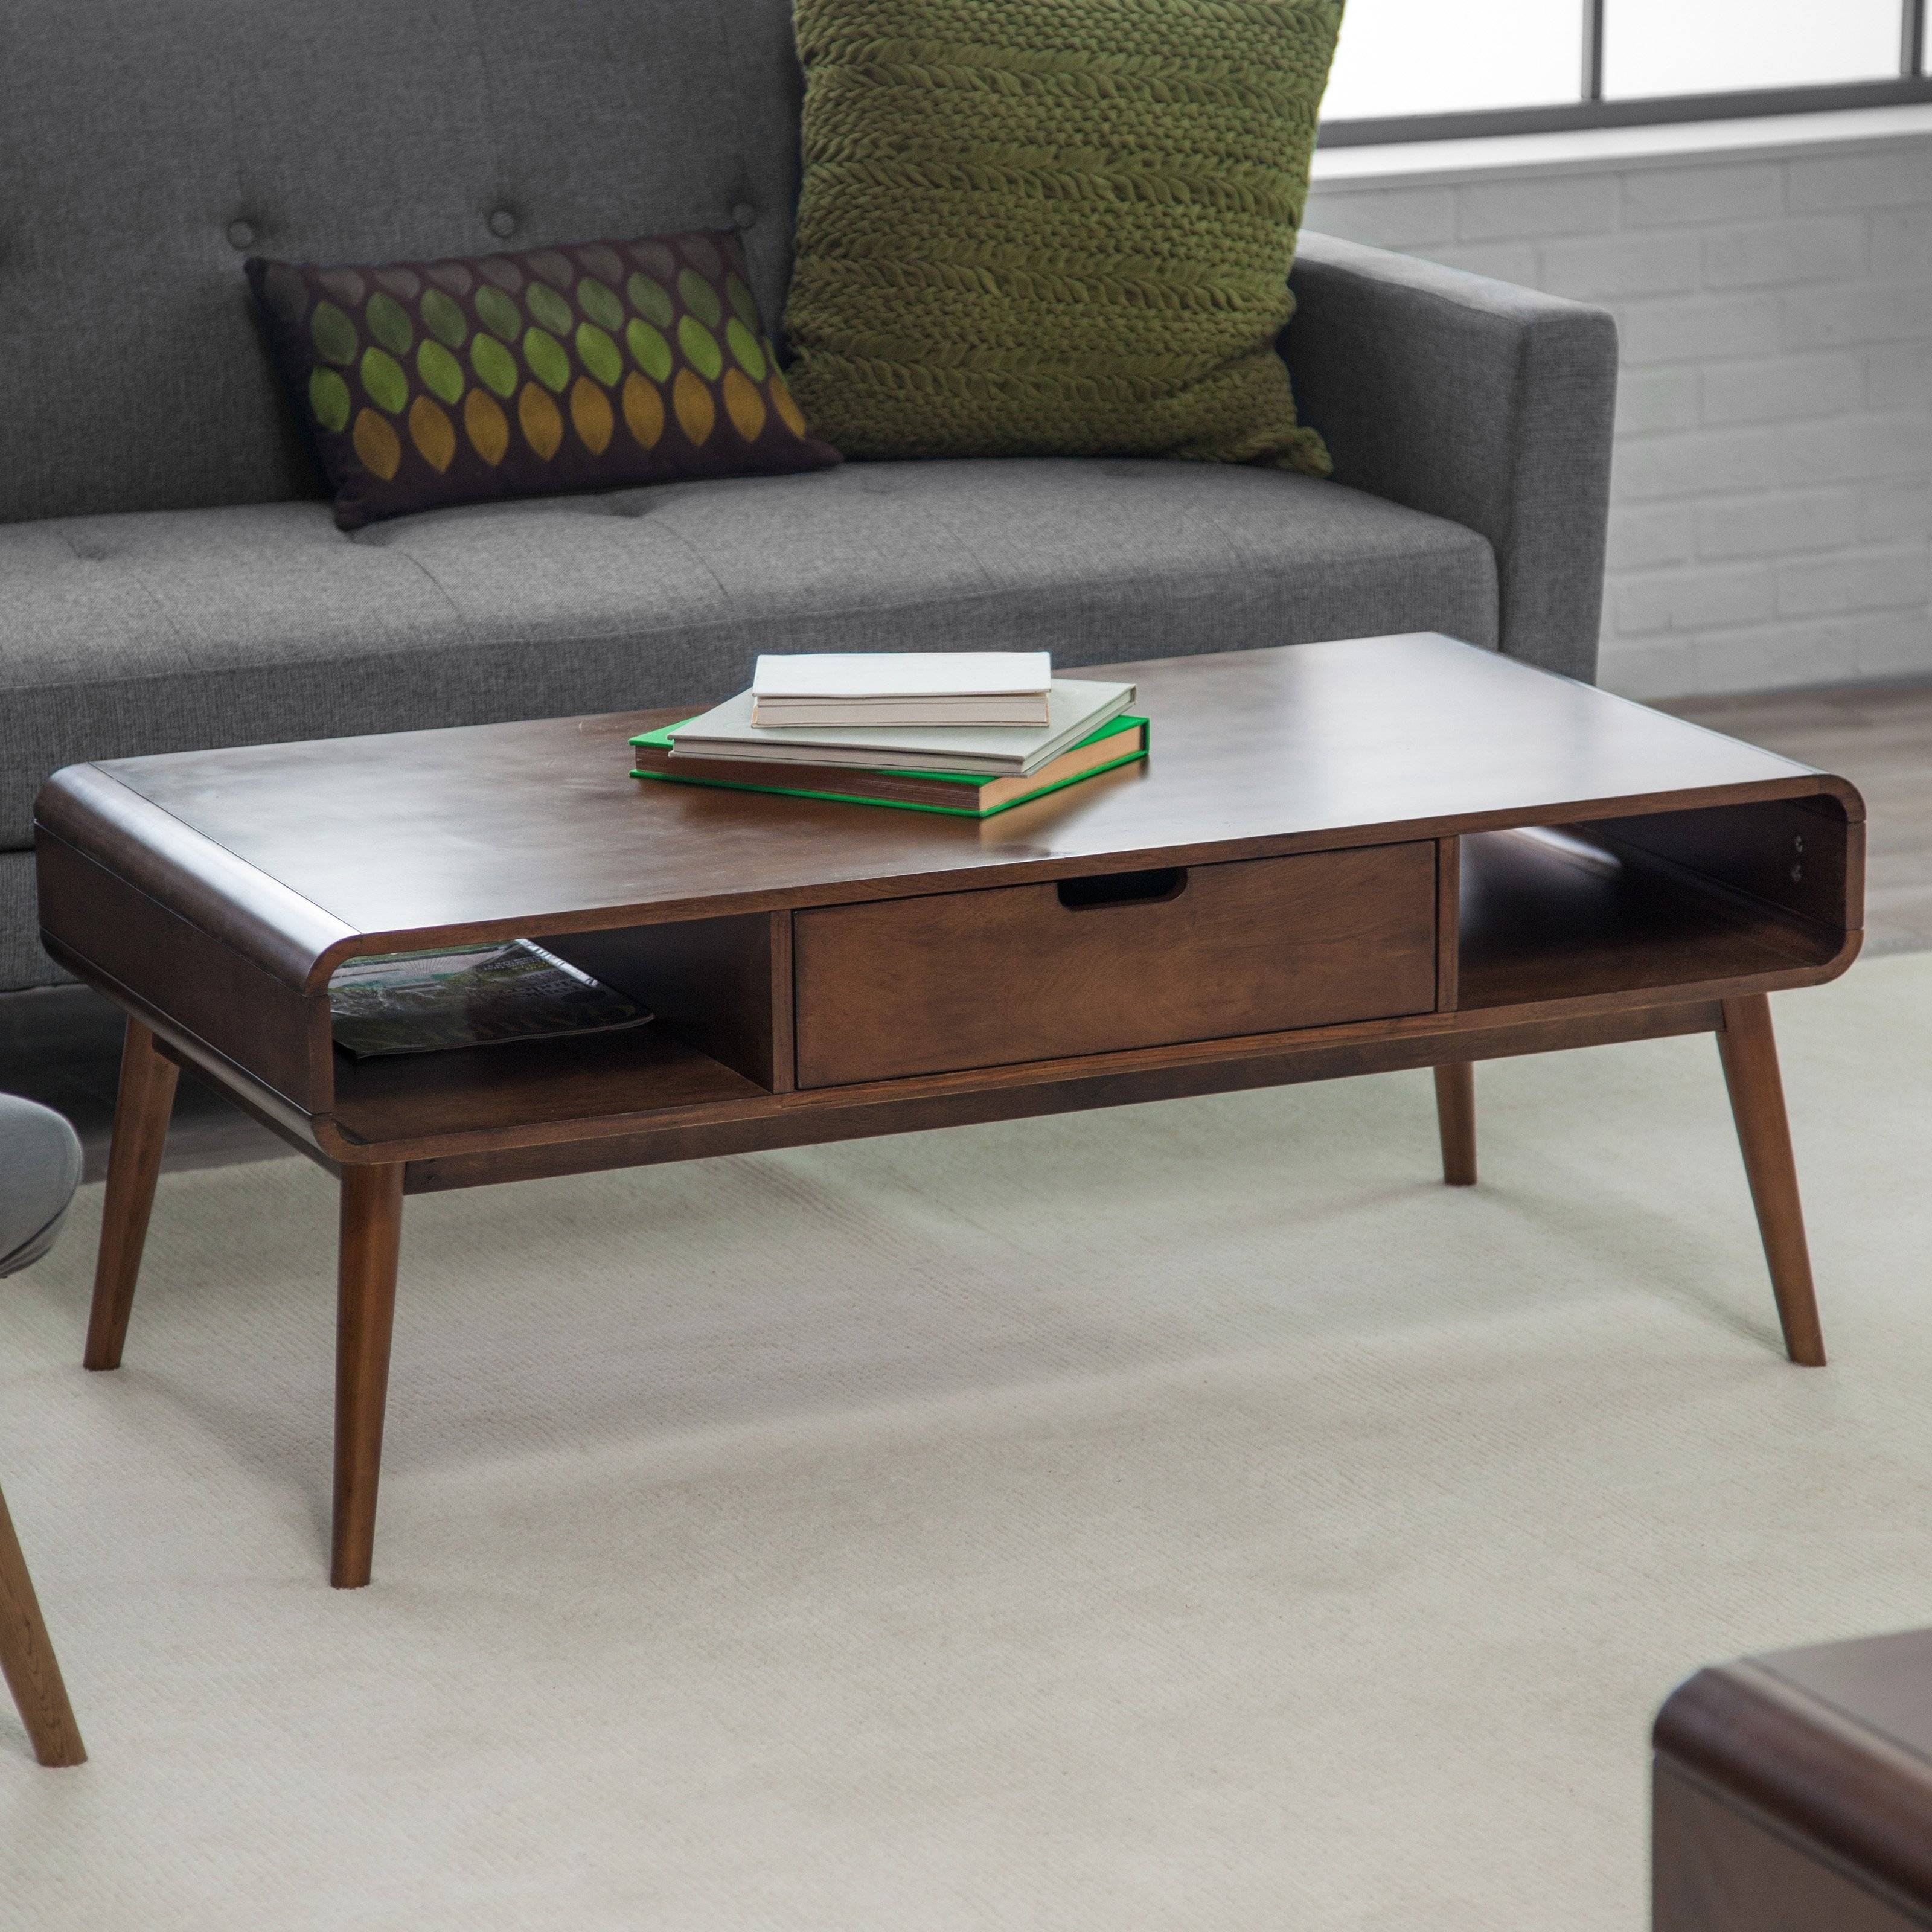 Belham Living Carter Mid Century Modern Coffee Table | Hayneedle throughout Rounded Corner Coffee Tables (Image 6 of 30)